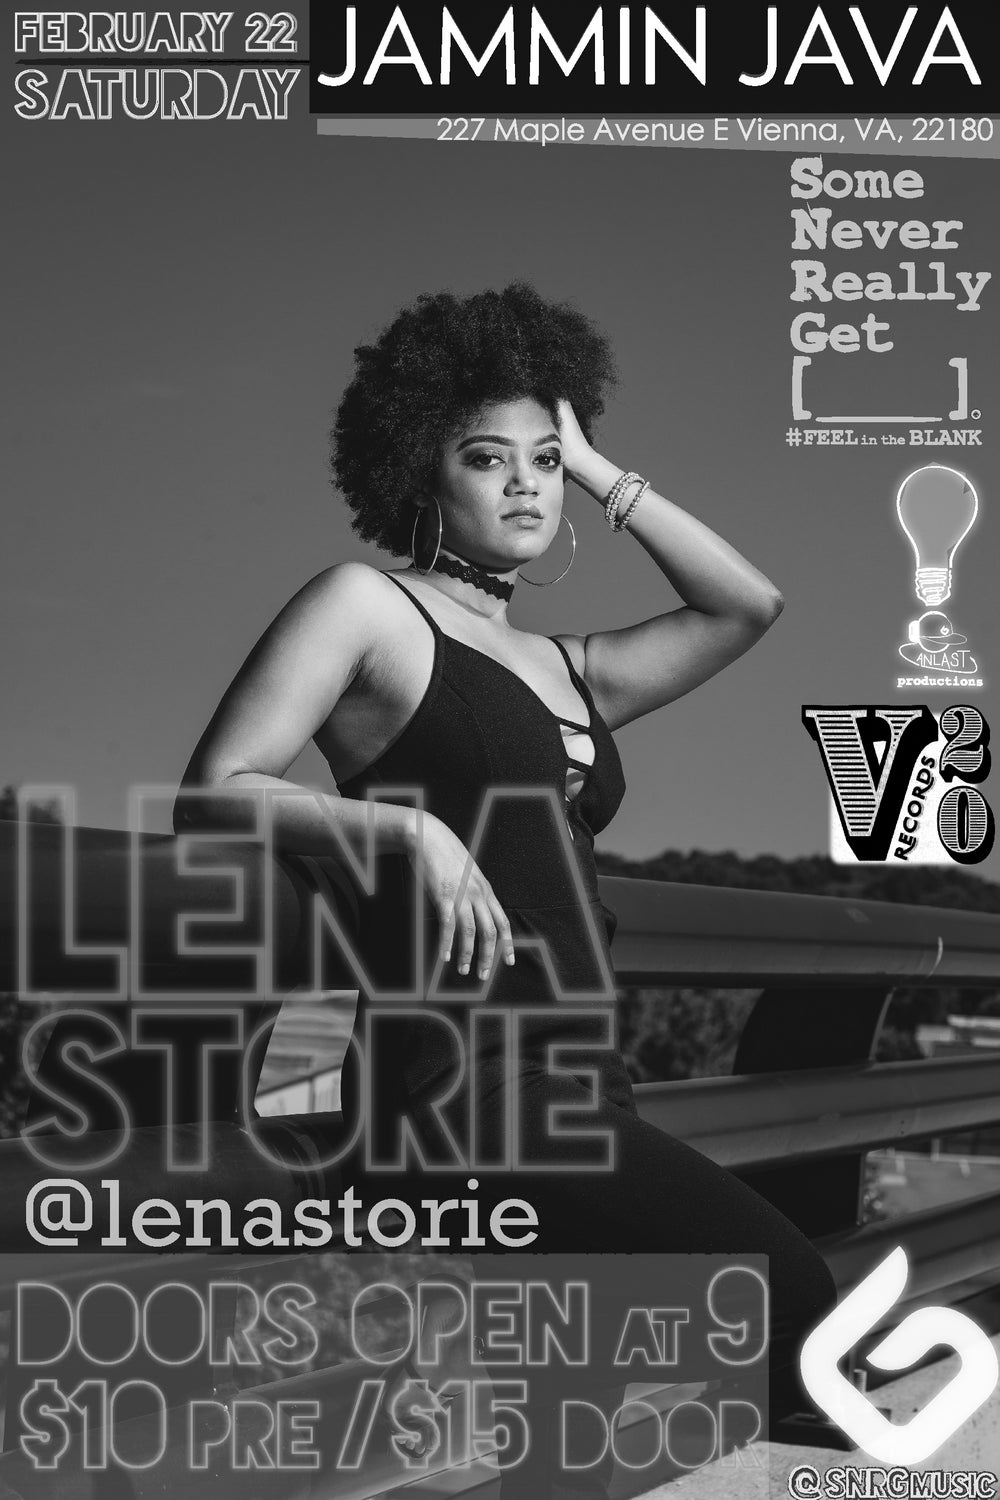 Image of LENA STORIE DISCOUNTED PRE-SALE TICKETS FEB. 22, 2020